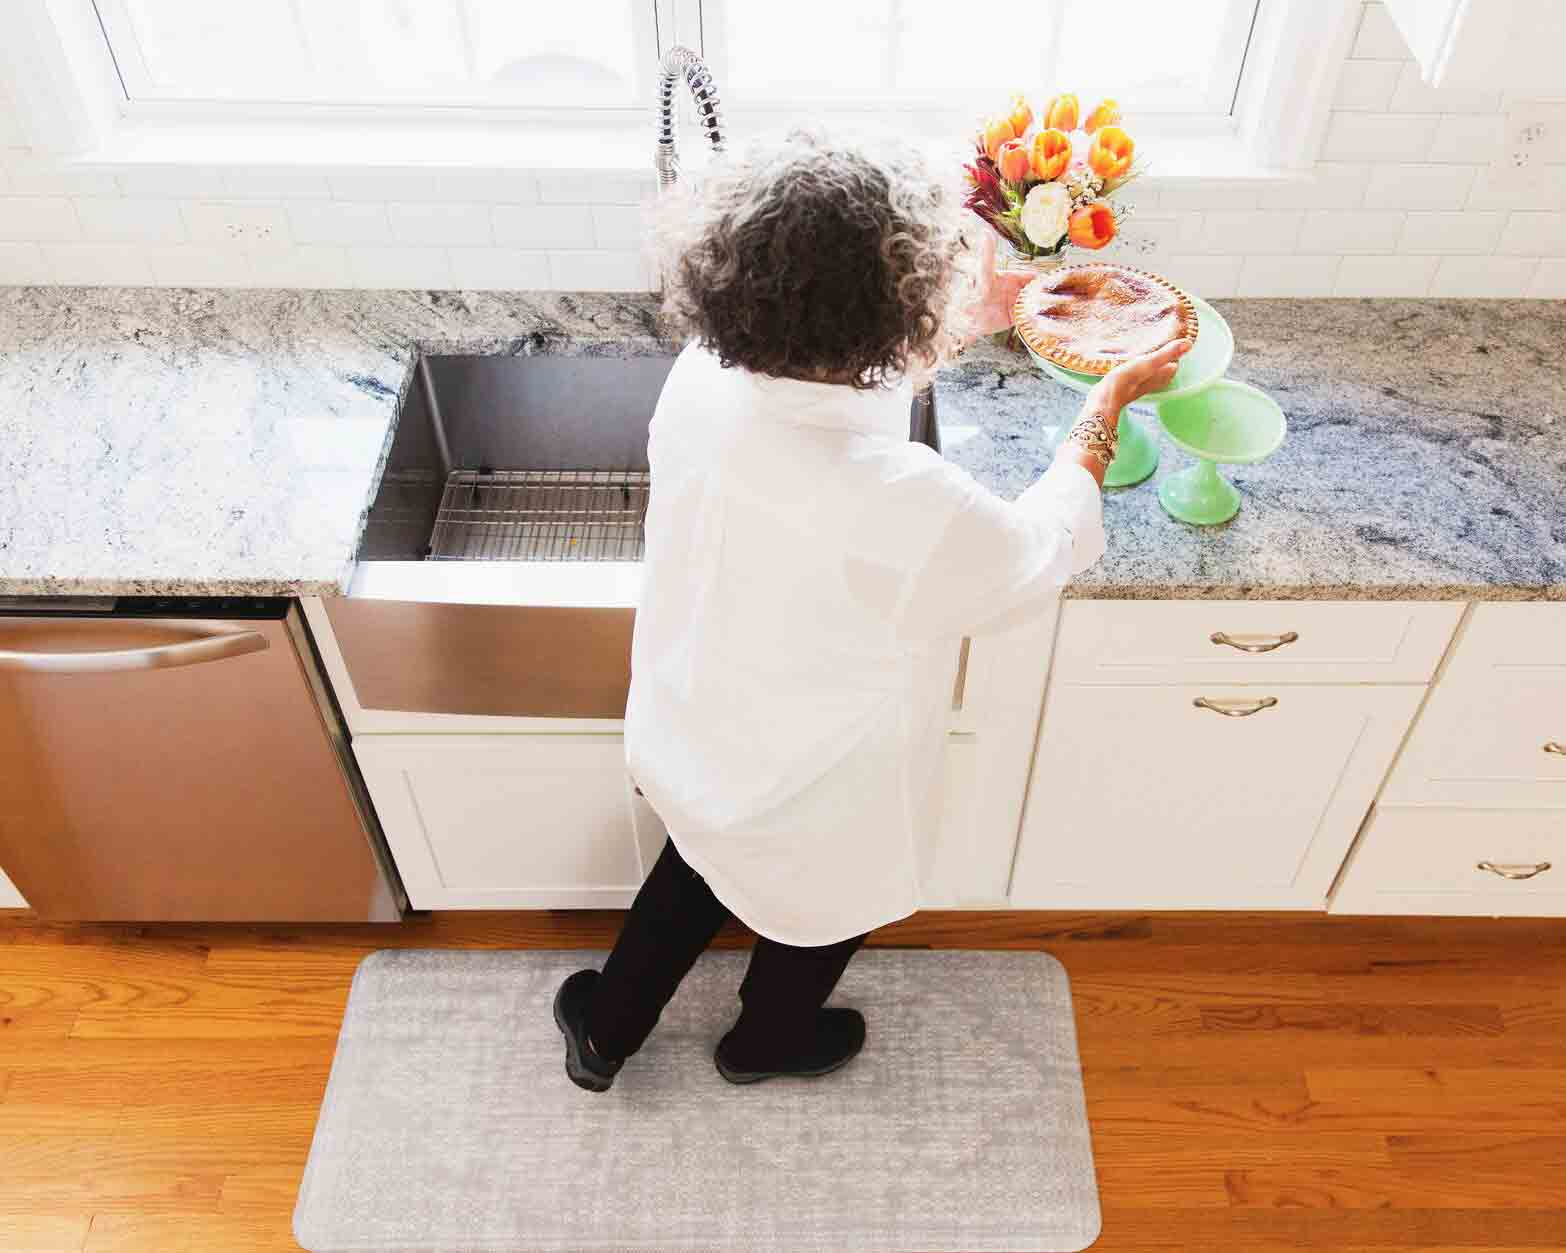 rear view of woman standing on antifatigue mat in kitchen